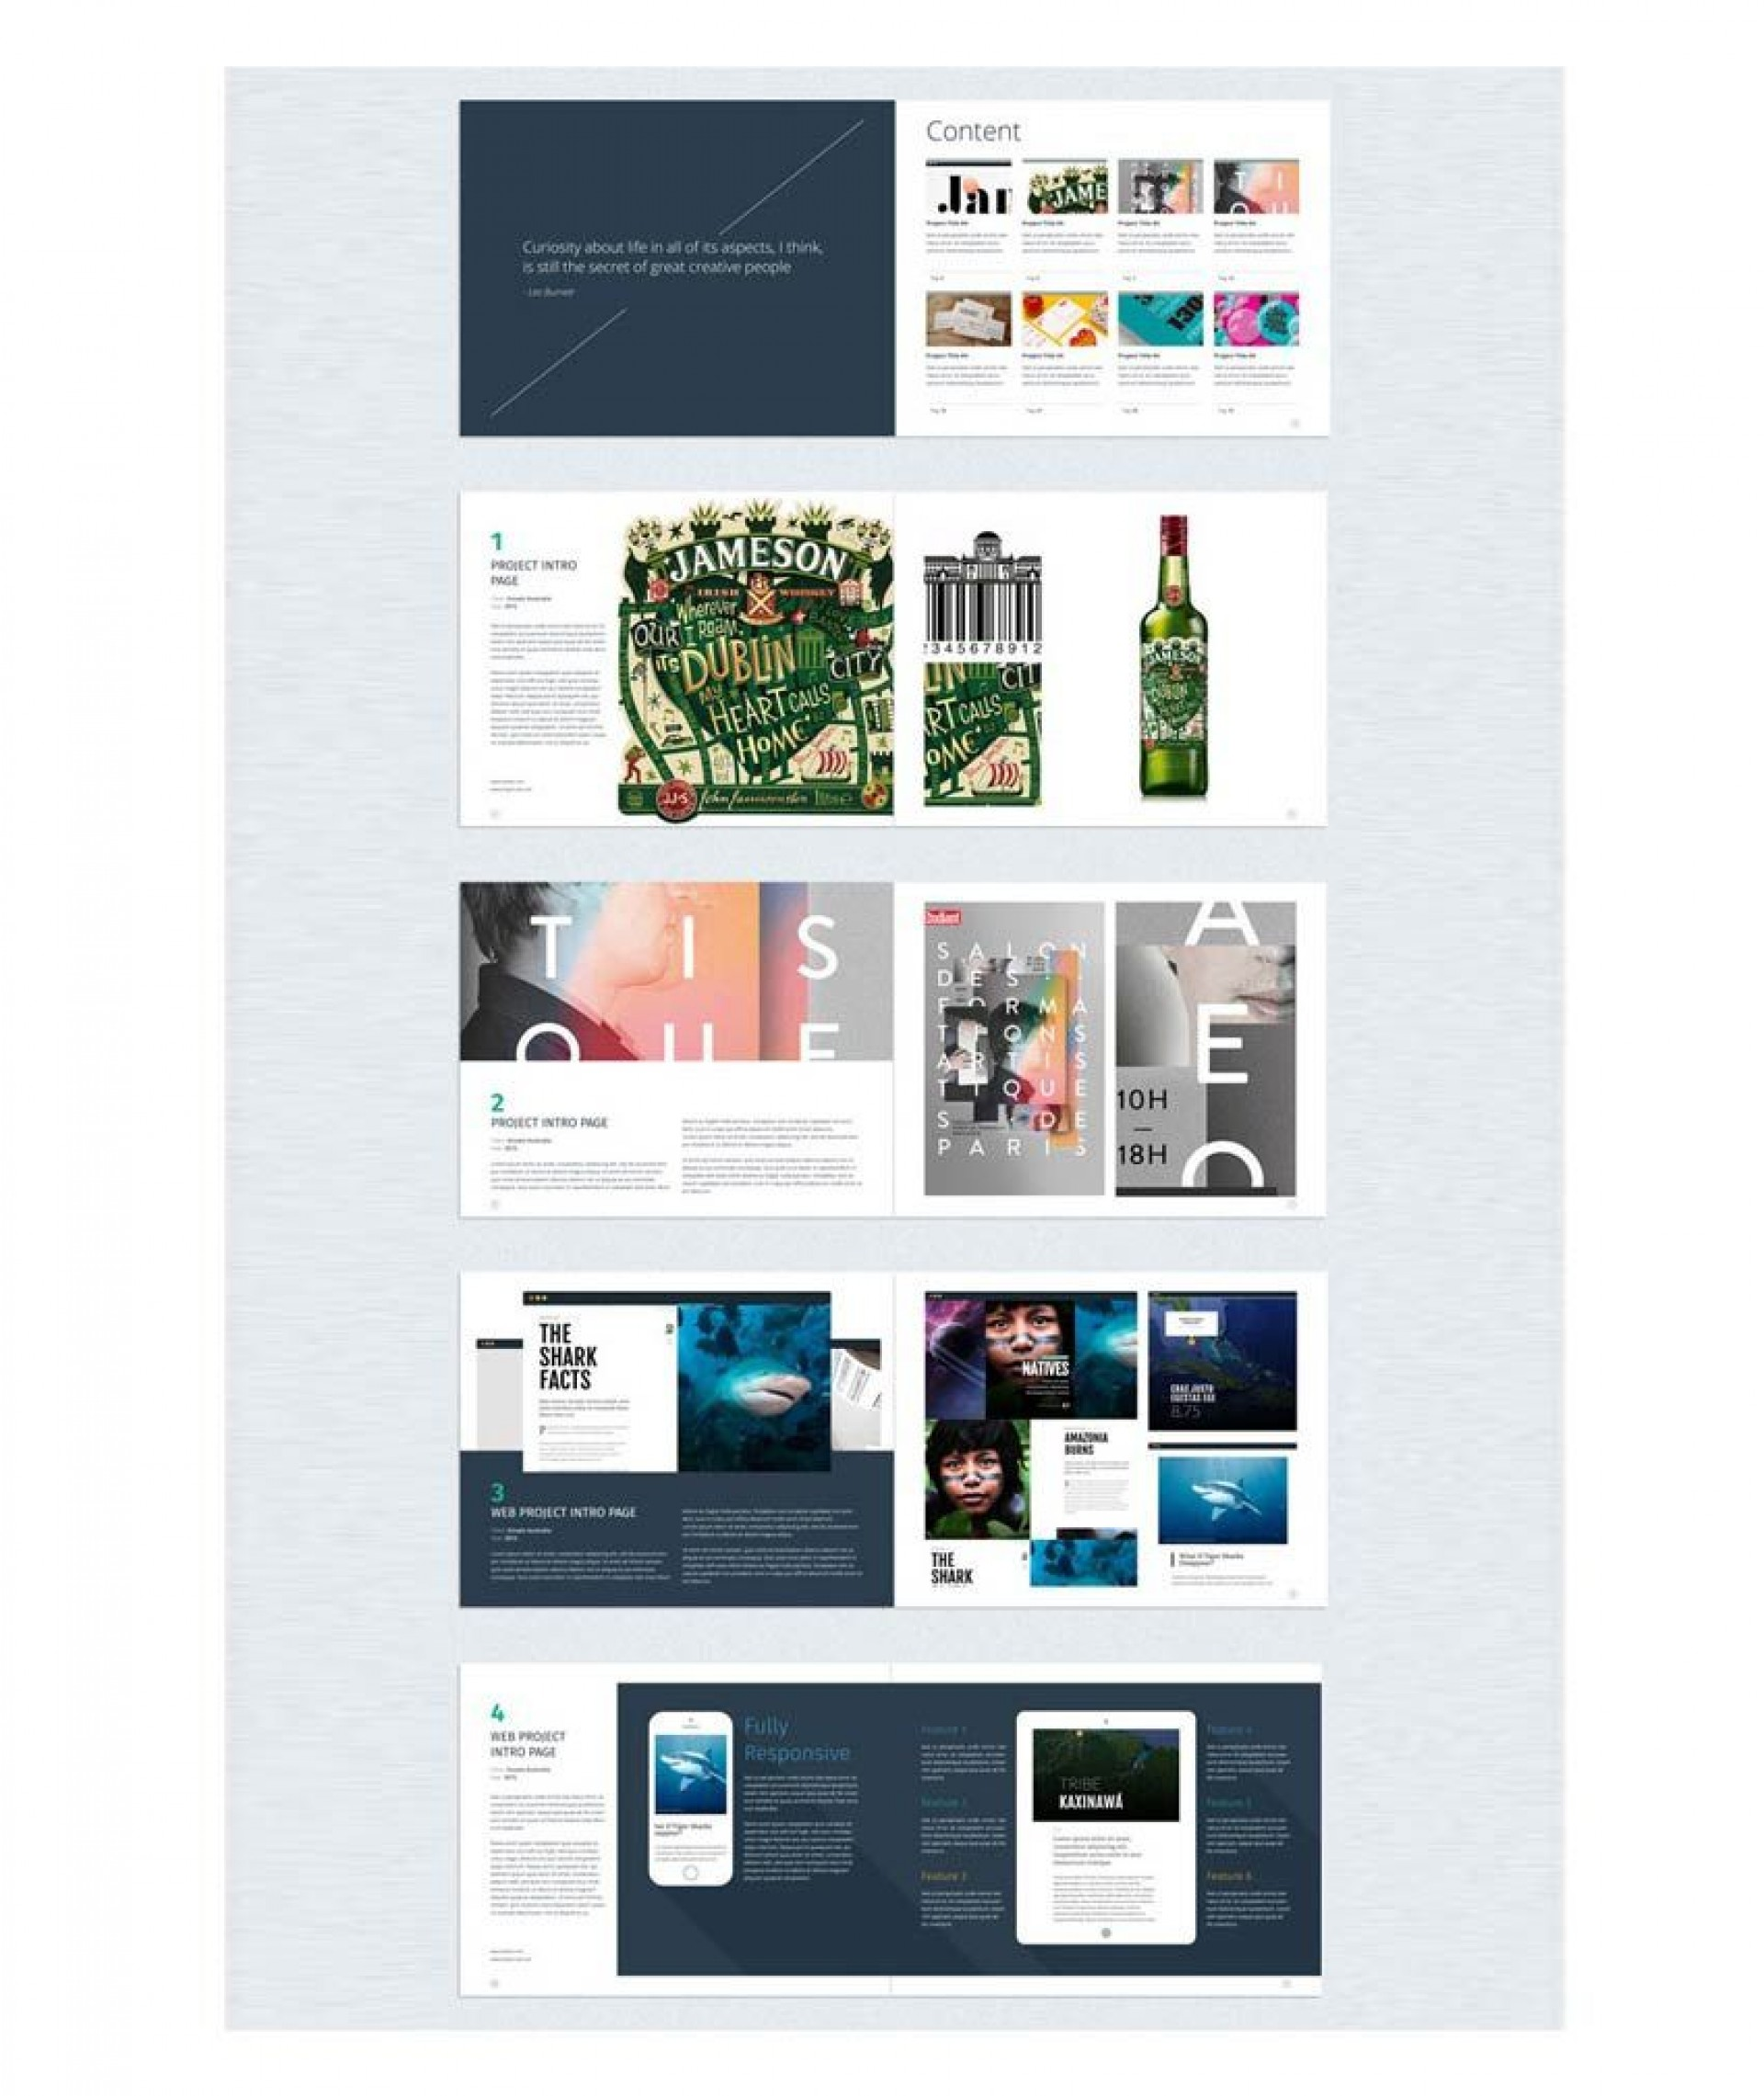 006 Fascinating In Design Portfolio Template Inspiration  Free Indesign A3 Photography Graphic Download1920